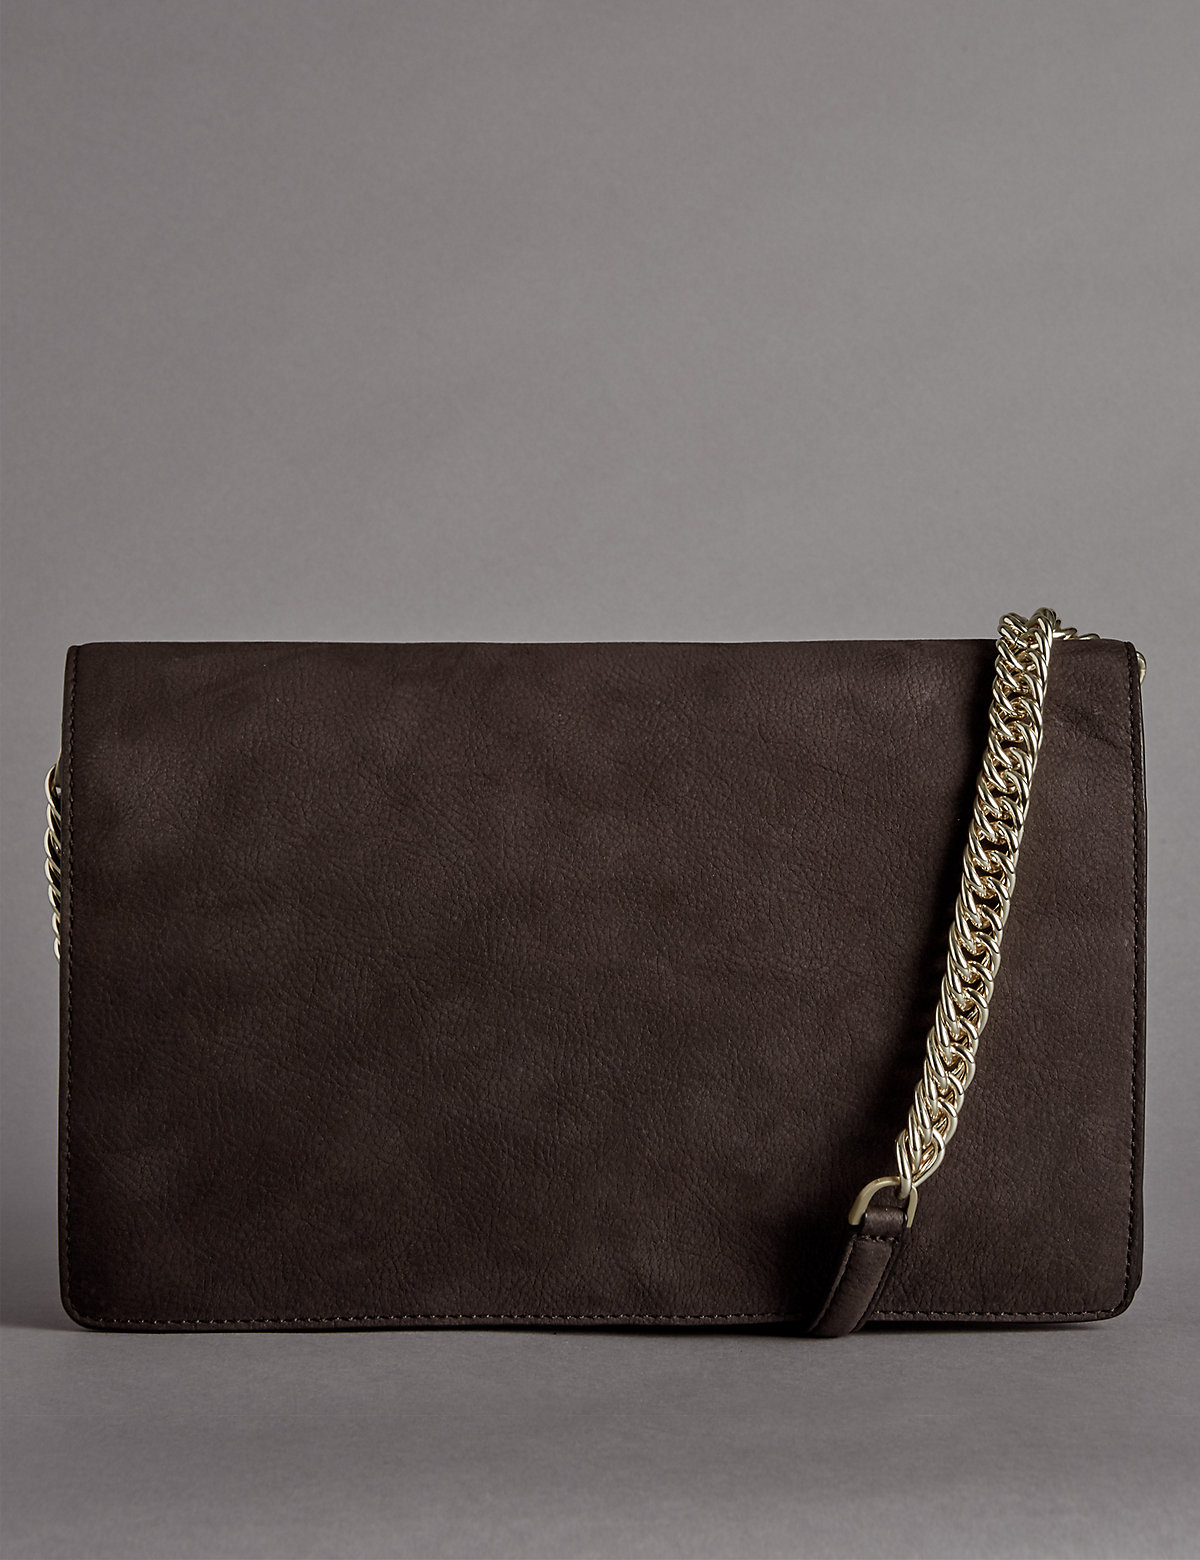 Autograph Nubuck Shoulder Clutch Bag